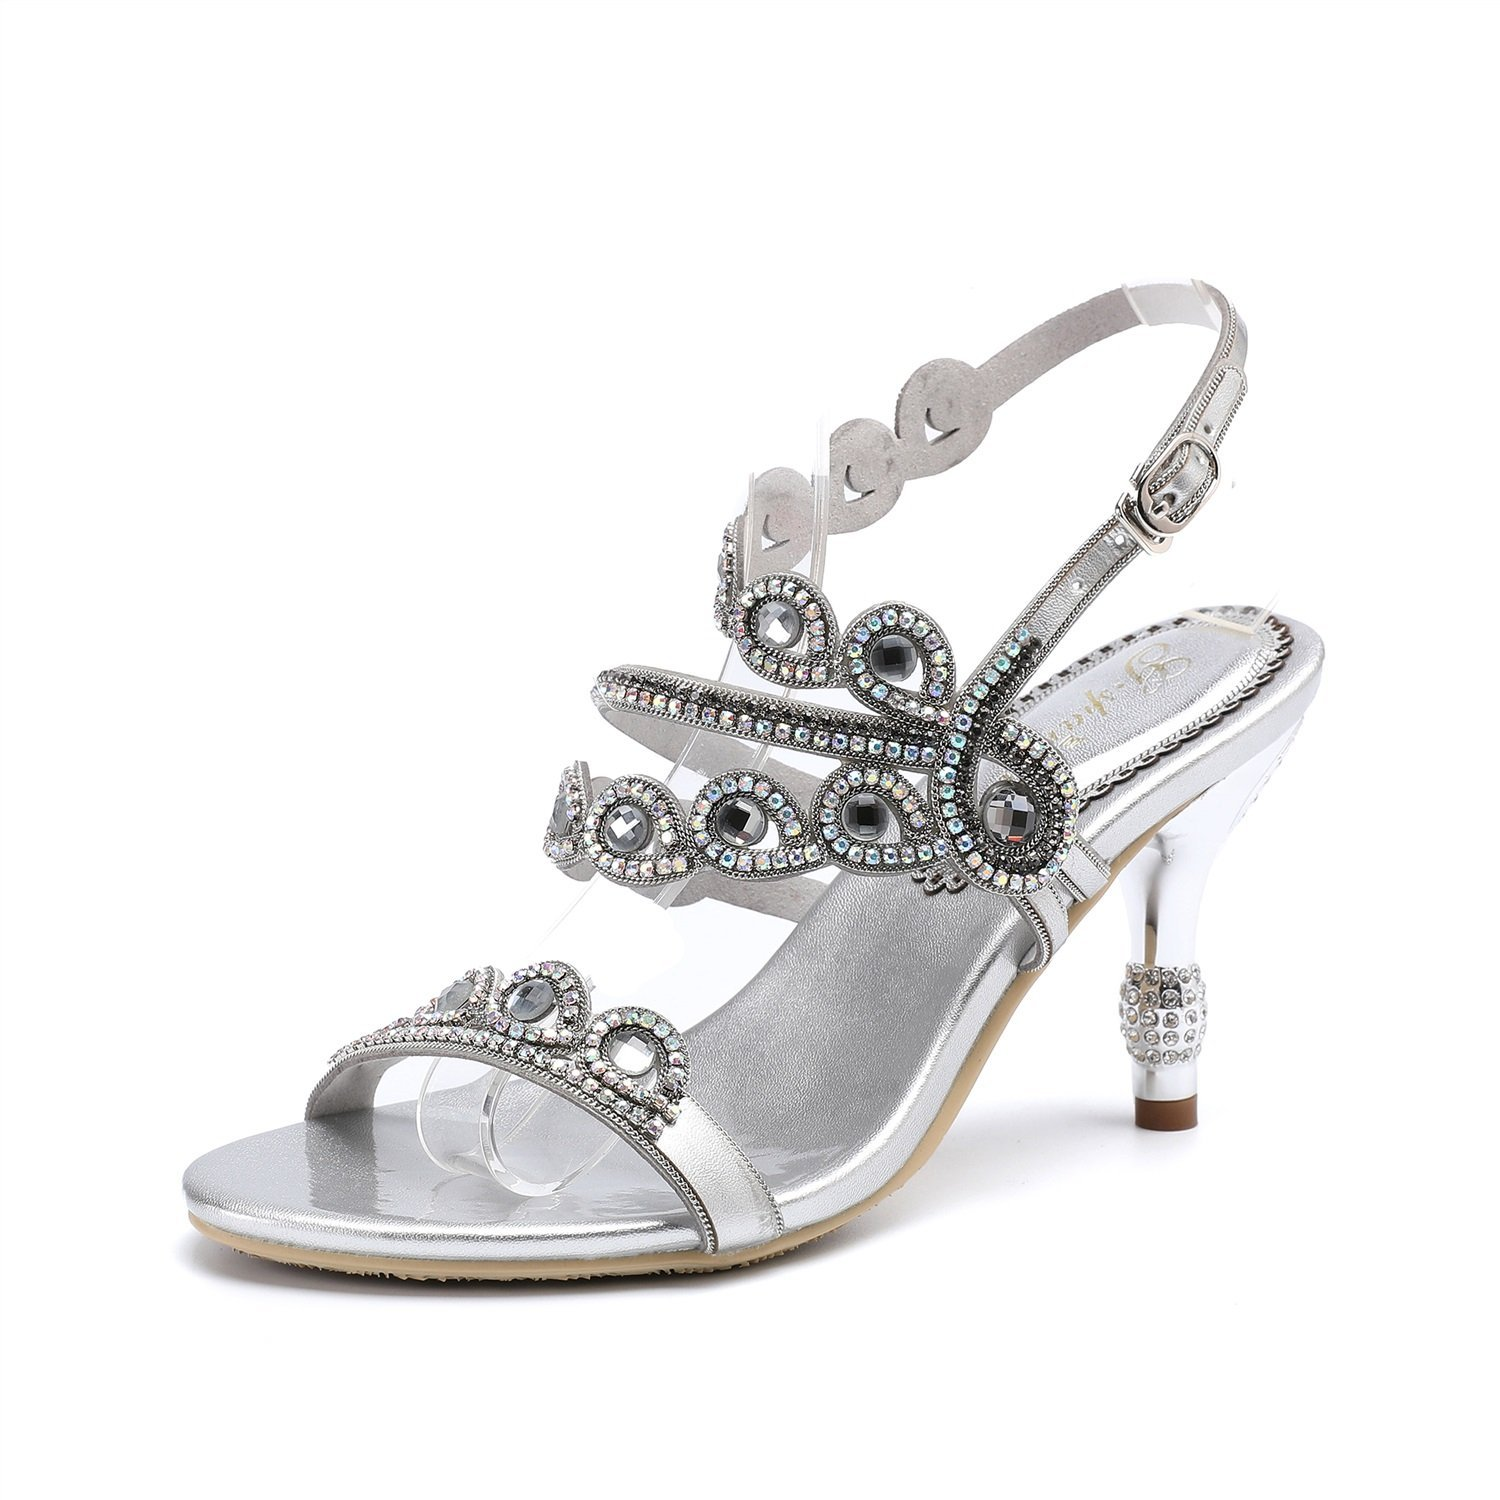 Huanhuan Women's Shoes Rhinestone Leather 2018 New Summer Rhinestone Hollows Sexy Sandals Diamond Mid Heel Open Toe Rhinestone Party Club Shoes